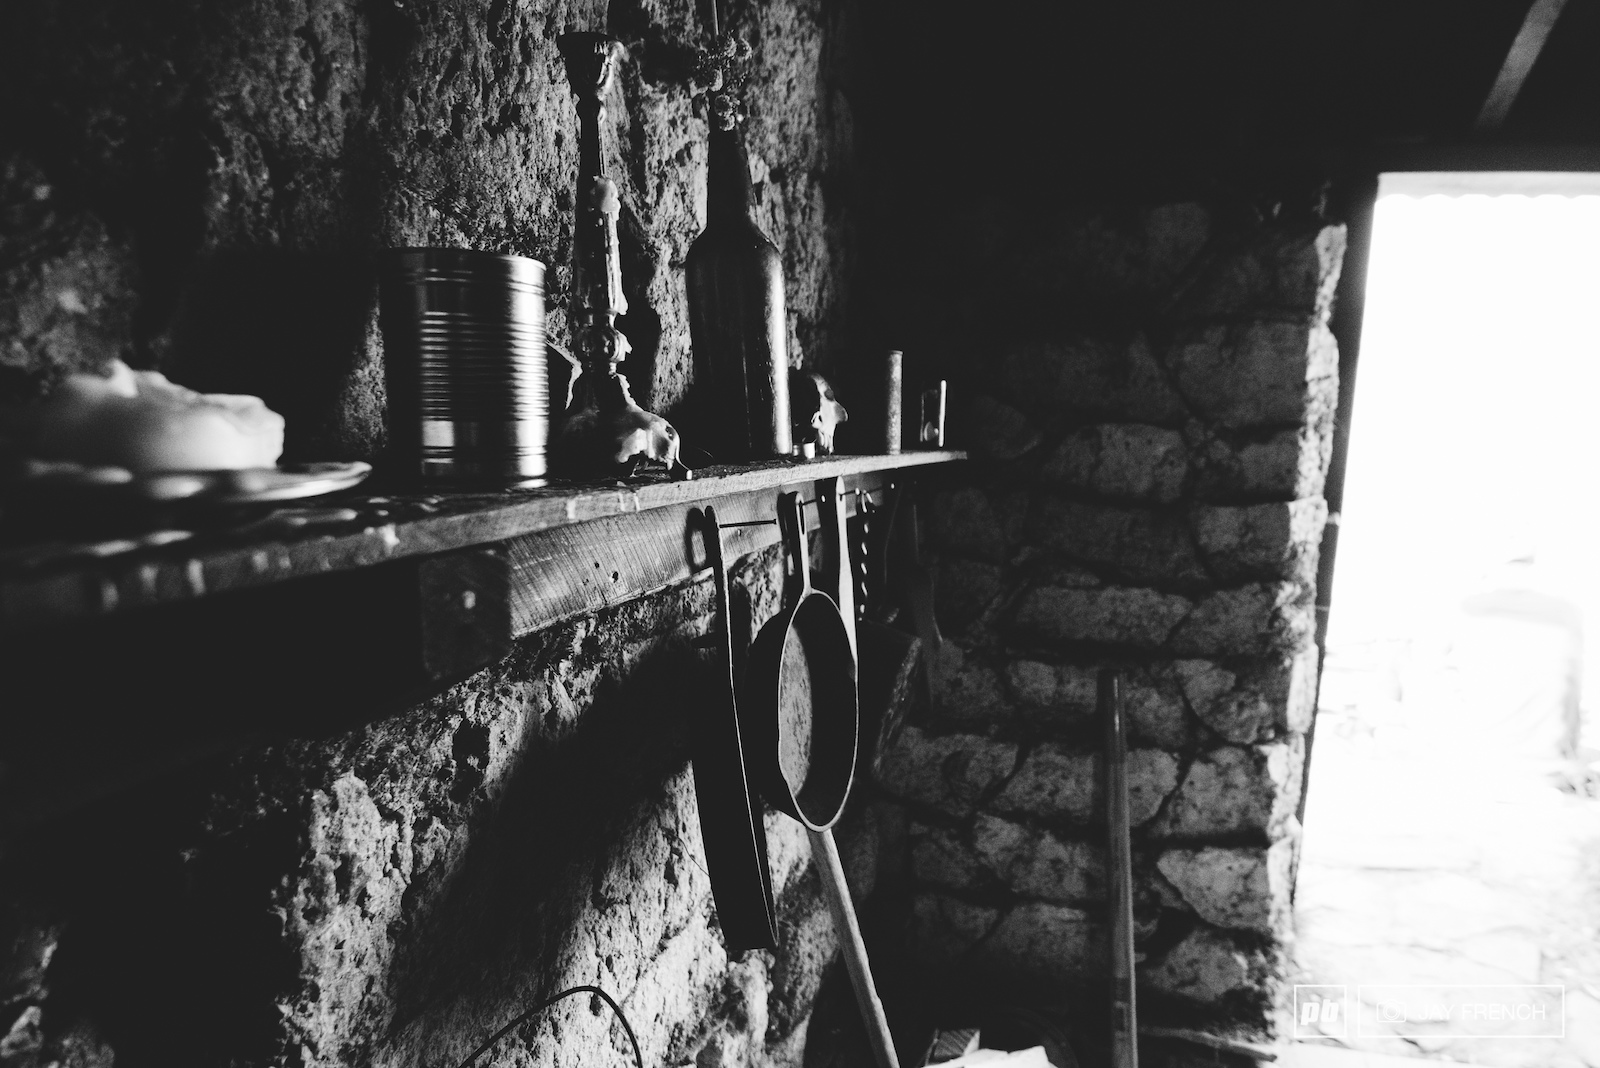 Inside the mud hut proper old tools of the trade.